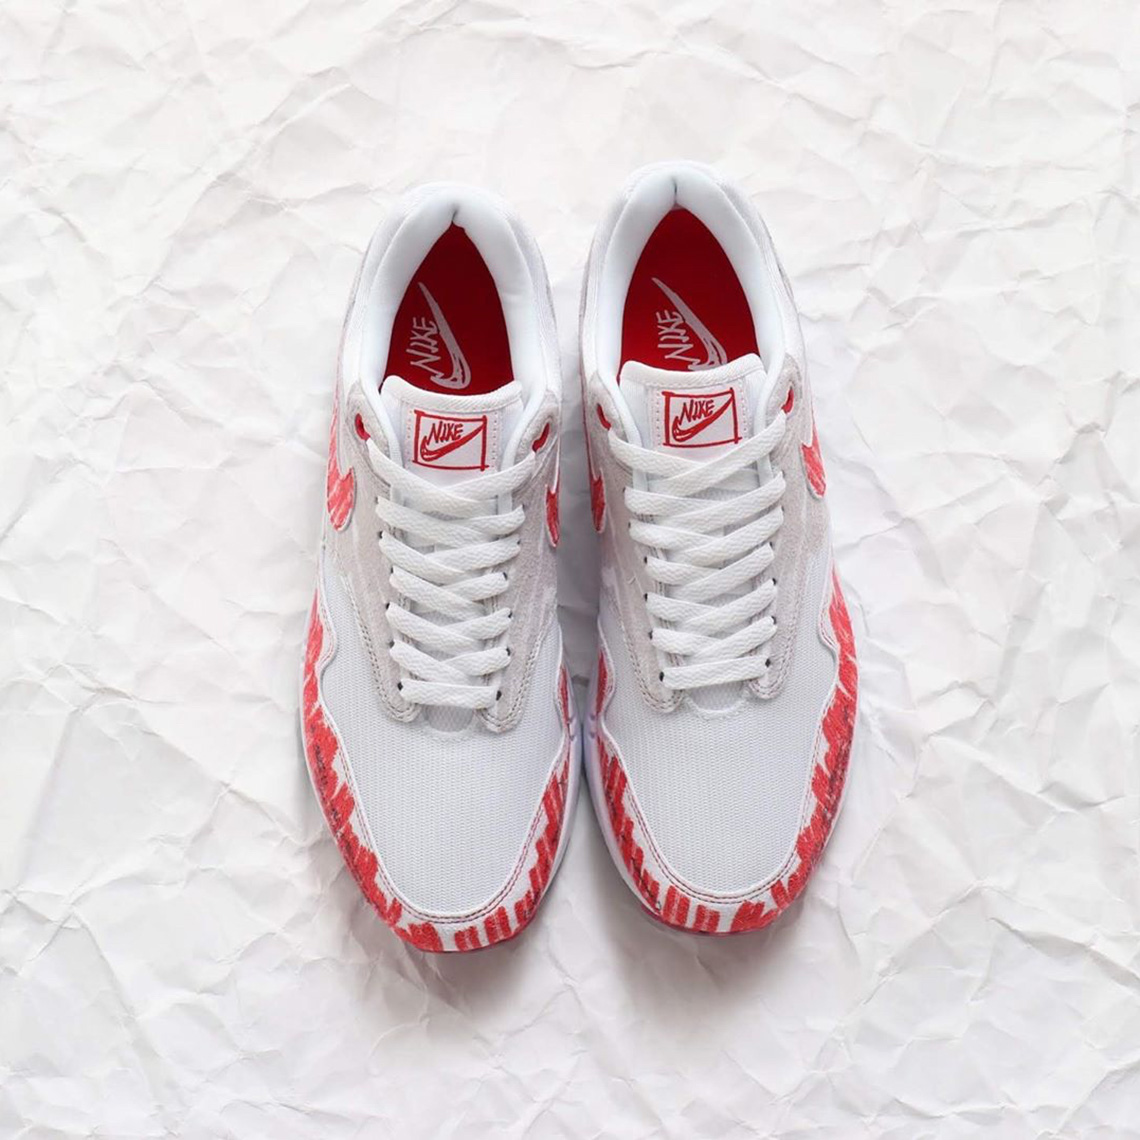 34838f1d Nike Air Max 1 Sketch To Shelf CJ4286-101 Release Date | SneakerNews.com